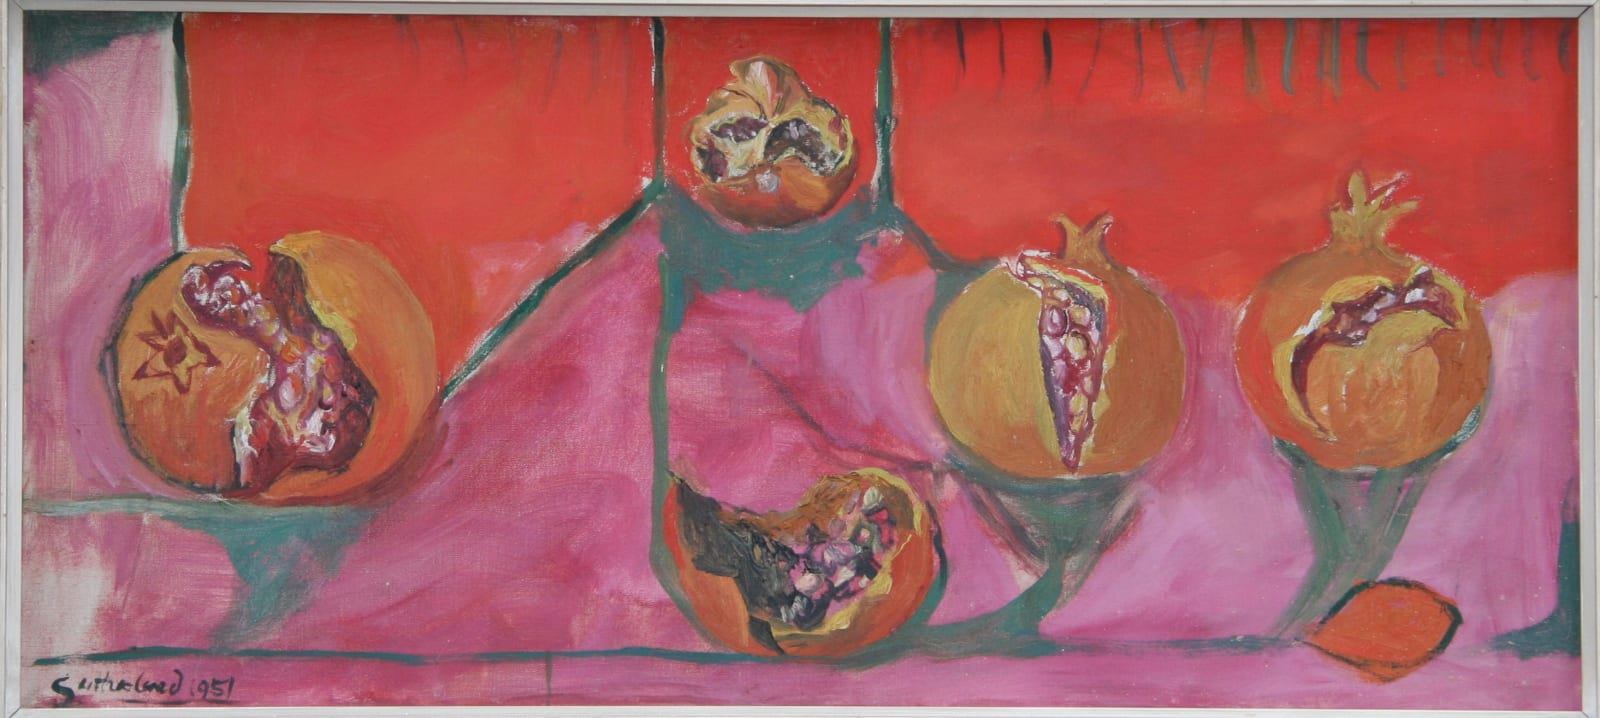 Graham SUTHERLAND (1903 – 1980) Pomegranates, 1951 Oil on canvas 15 ½ x 35 inches / 39.3 x 89 cm Signed and dated lower left